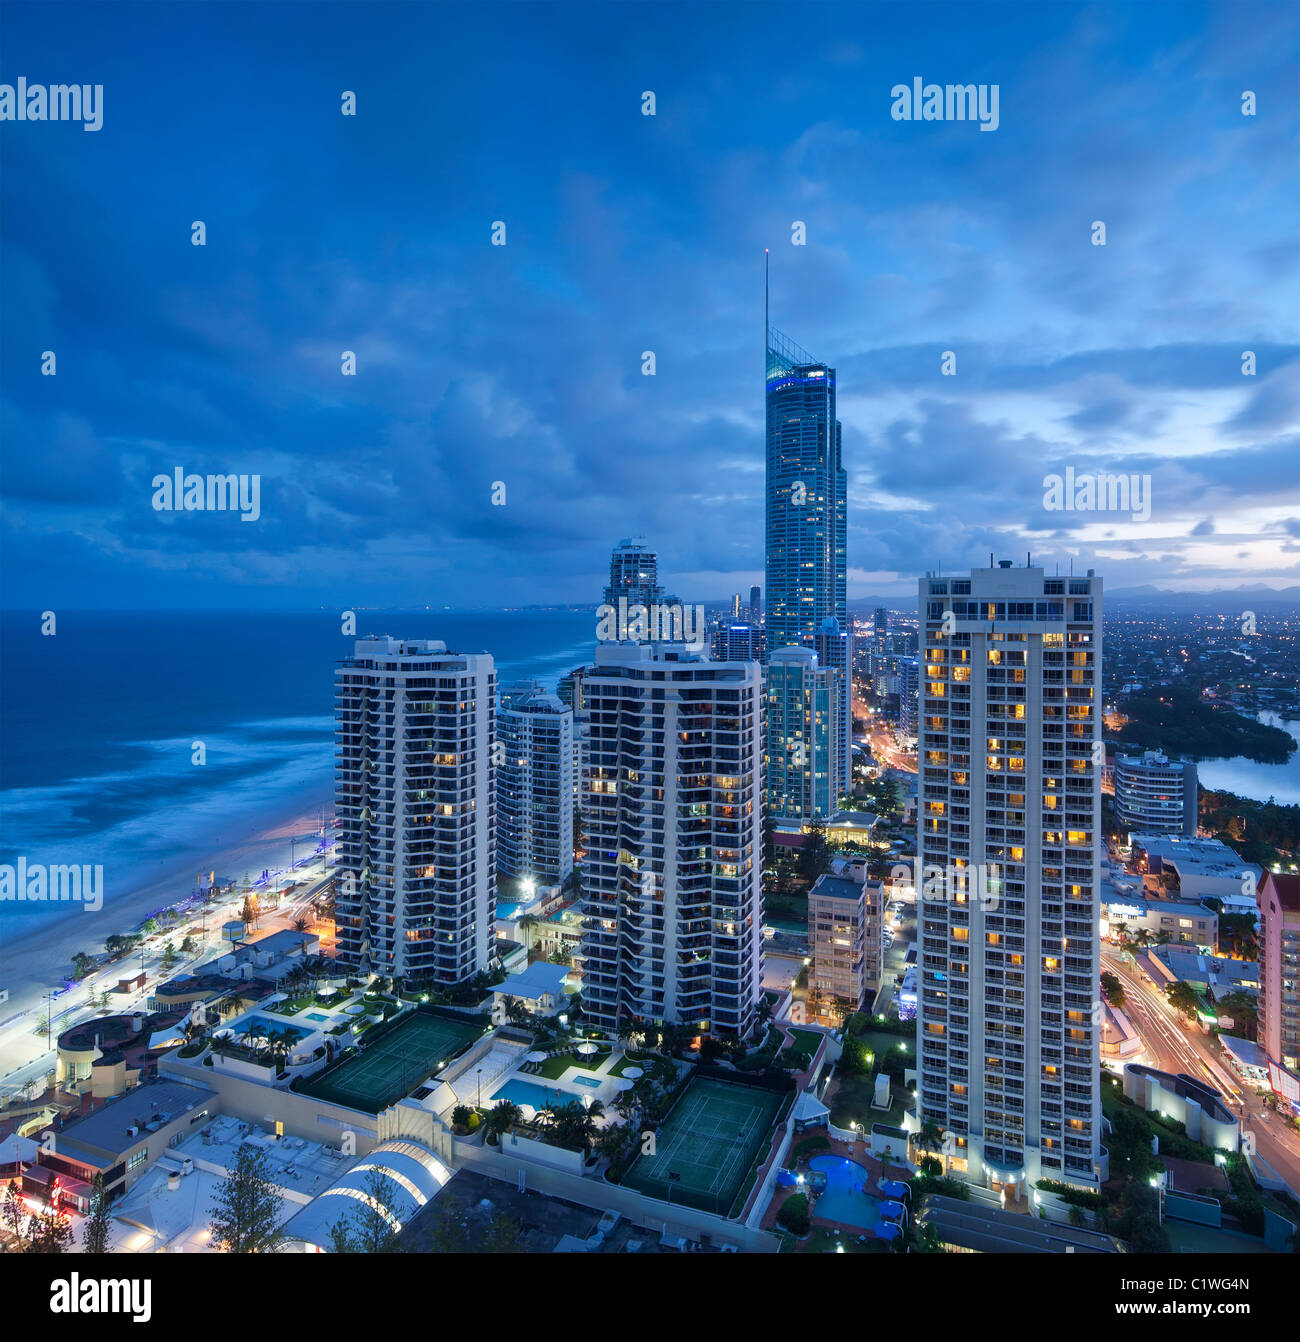 View over the modern city at dusk with ocean beside on square format (gold coast,queensland,australia) - Stock Image